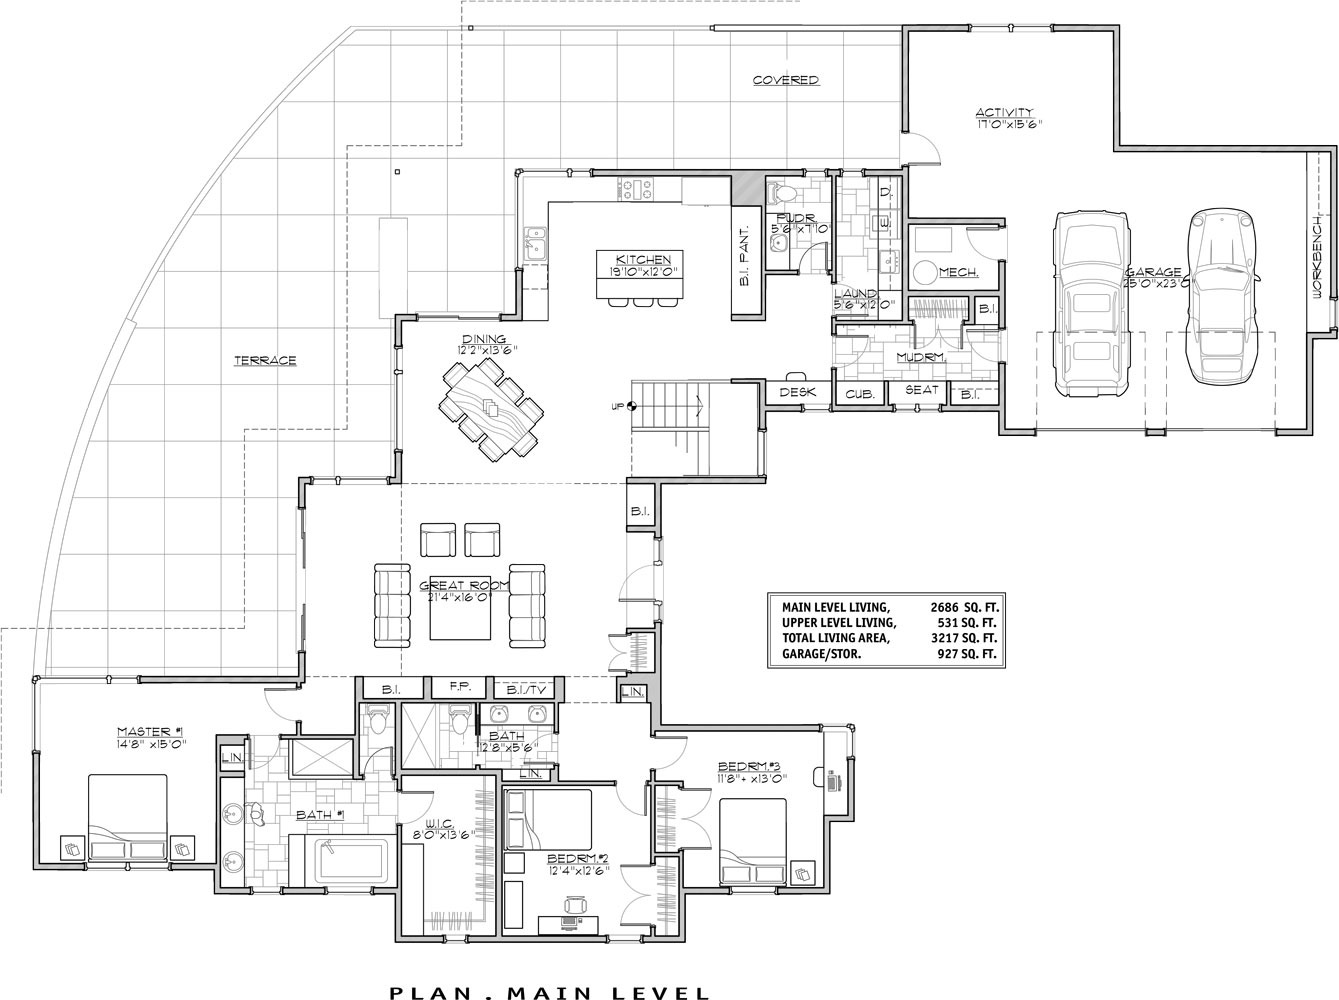 Luxury Contemporary 9044 3 Bedrooms and 3 Baths The House